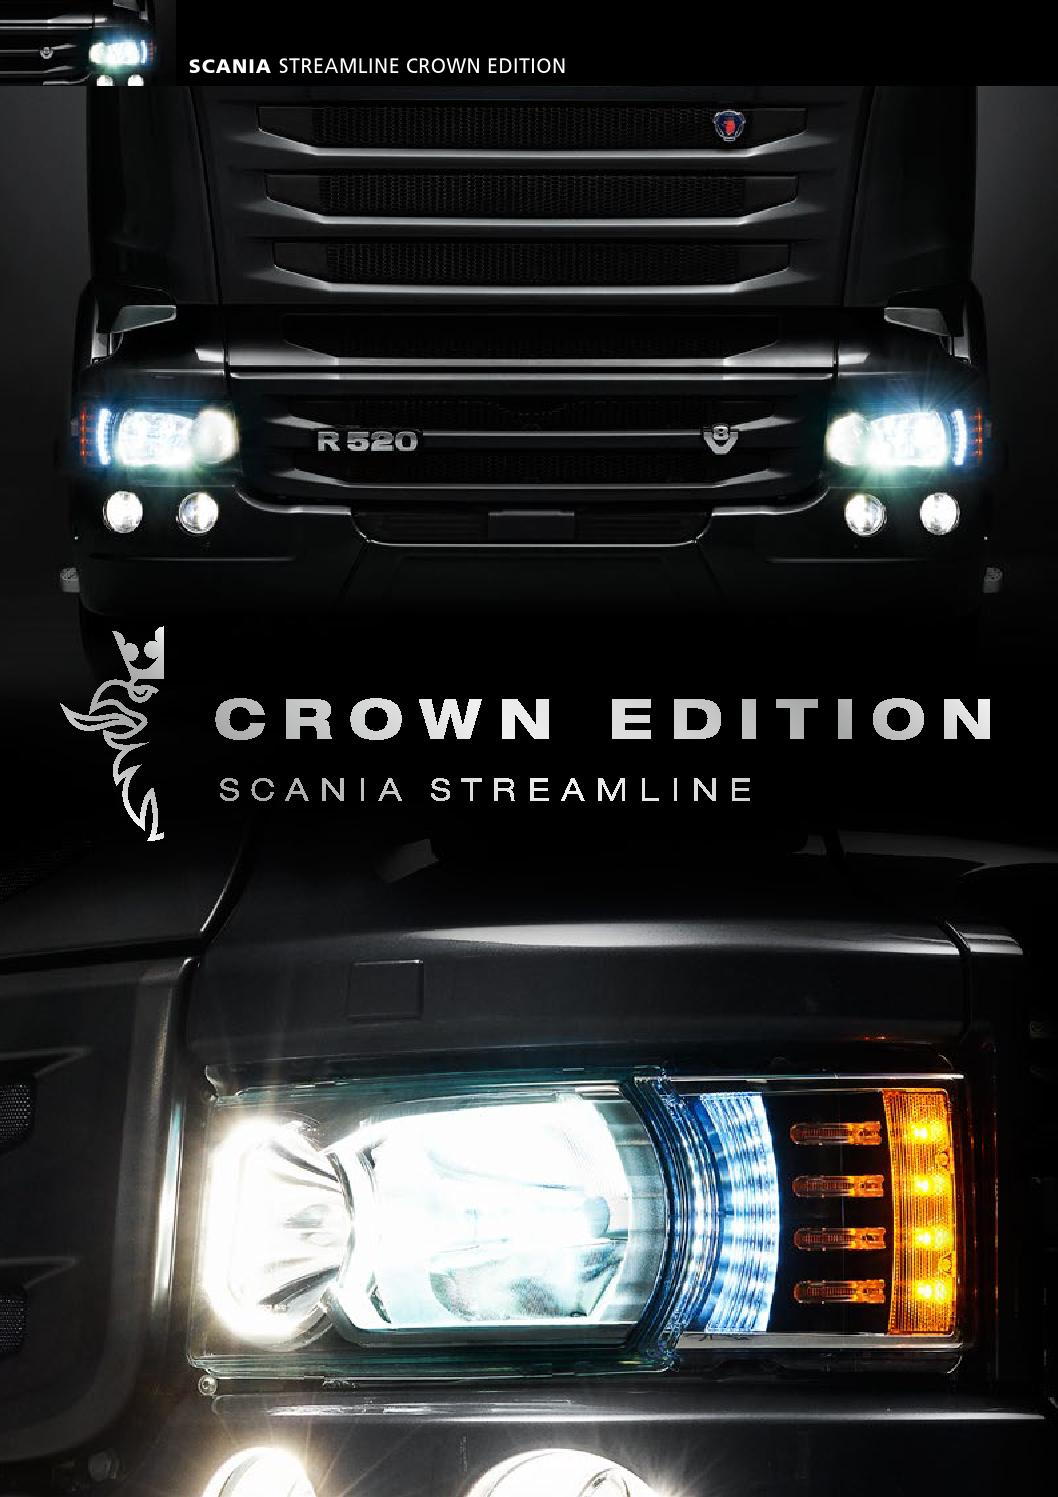 The Scania Streamline Crown Edition by Scania (Great Britain